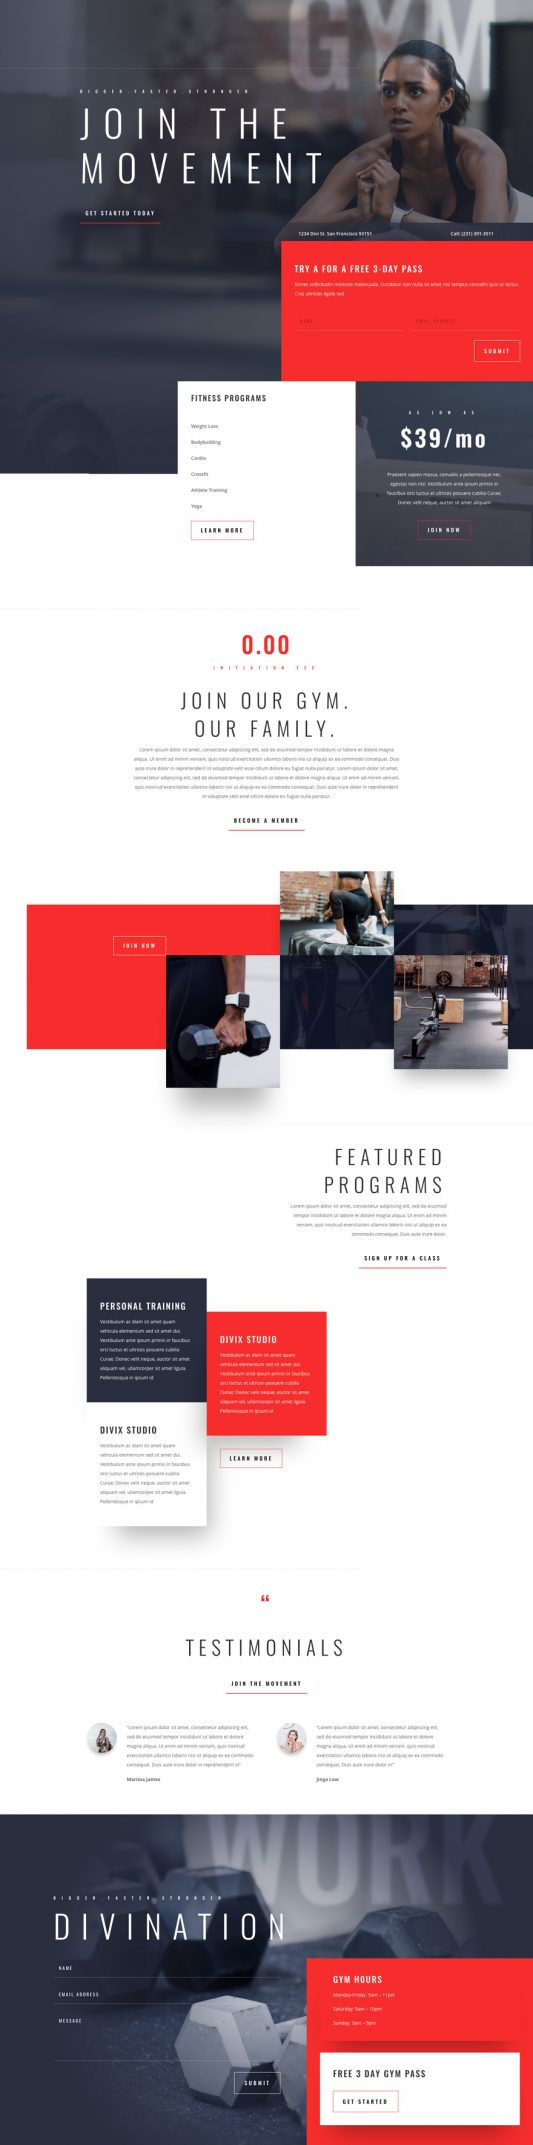 Fitness Gym Landing Page